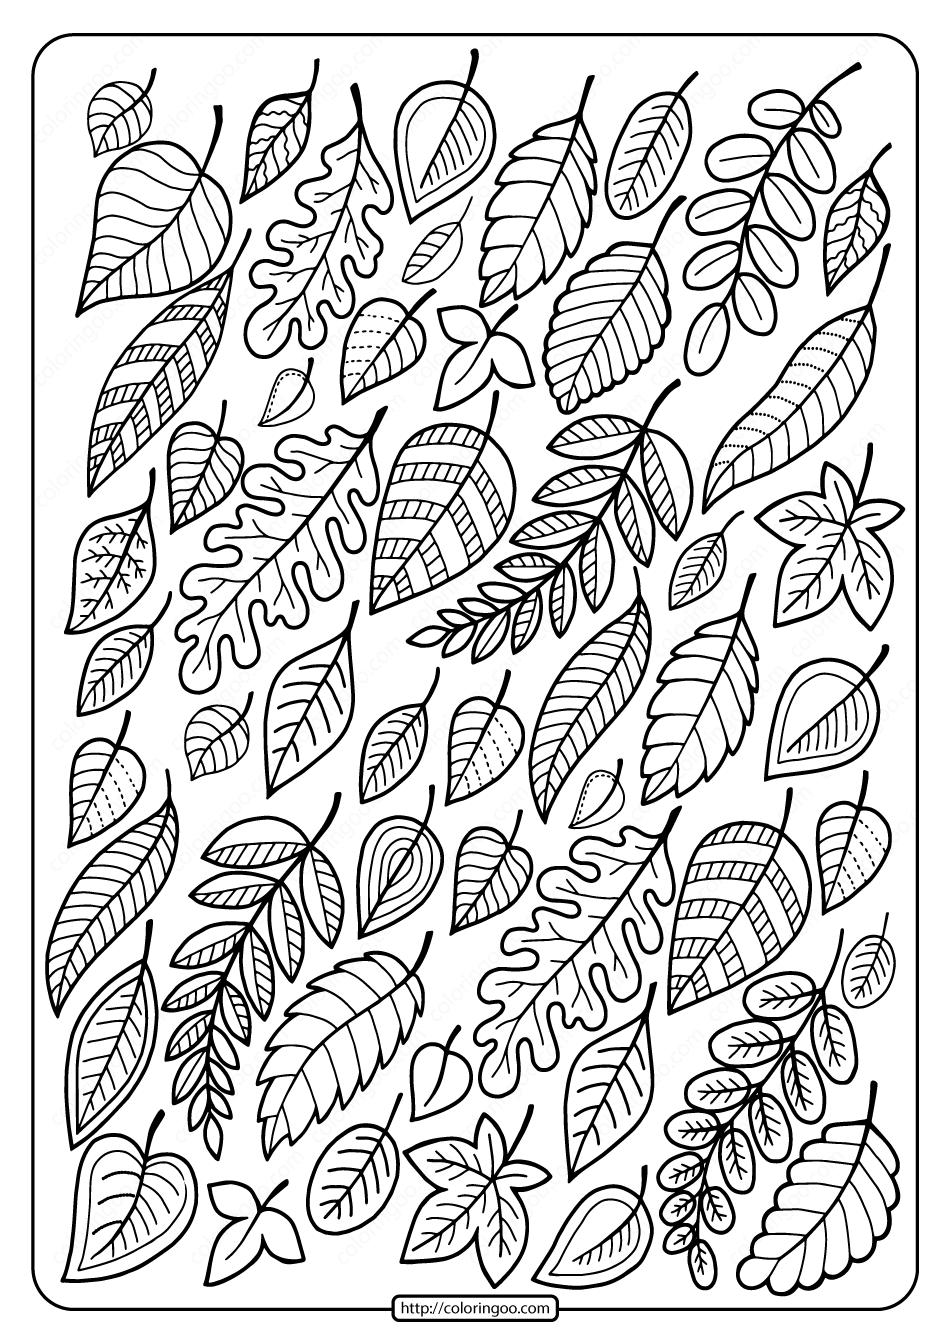 Free Printable Falling Leaves Coloring Page Leaf Coloring Page Fall Coloring Sheets Fall Coloring Pages